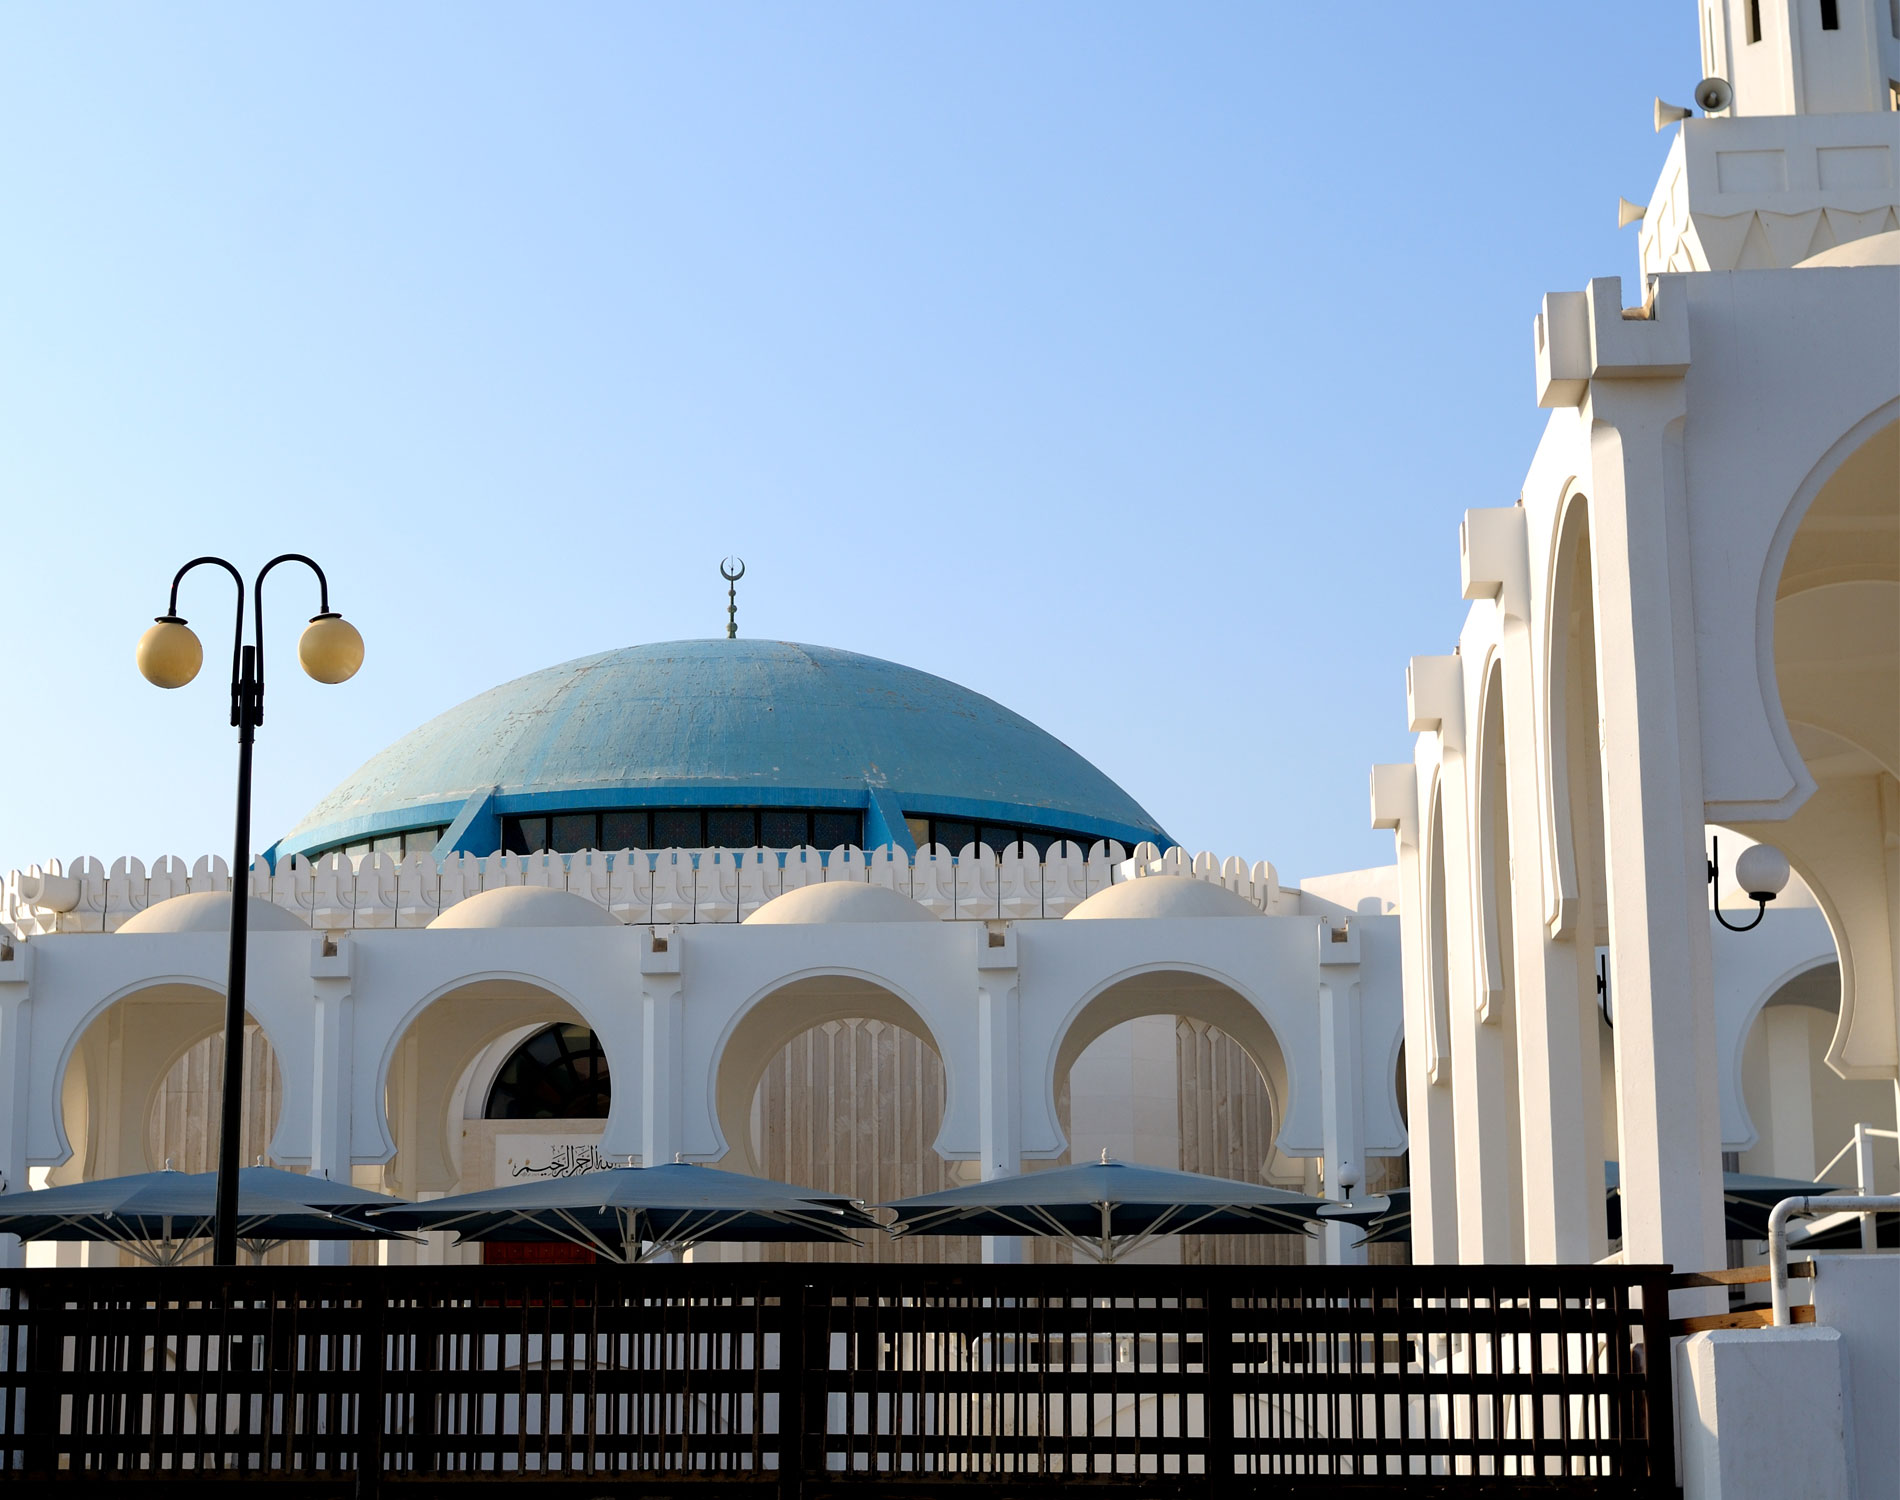 /~/media/Images/Website/Background%20Images/Offices/Jeddah/Jeddah_Saudi_Arabia_Mosque_1900x1500px.ashx